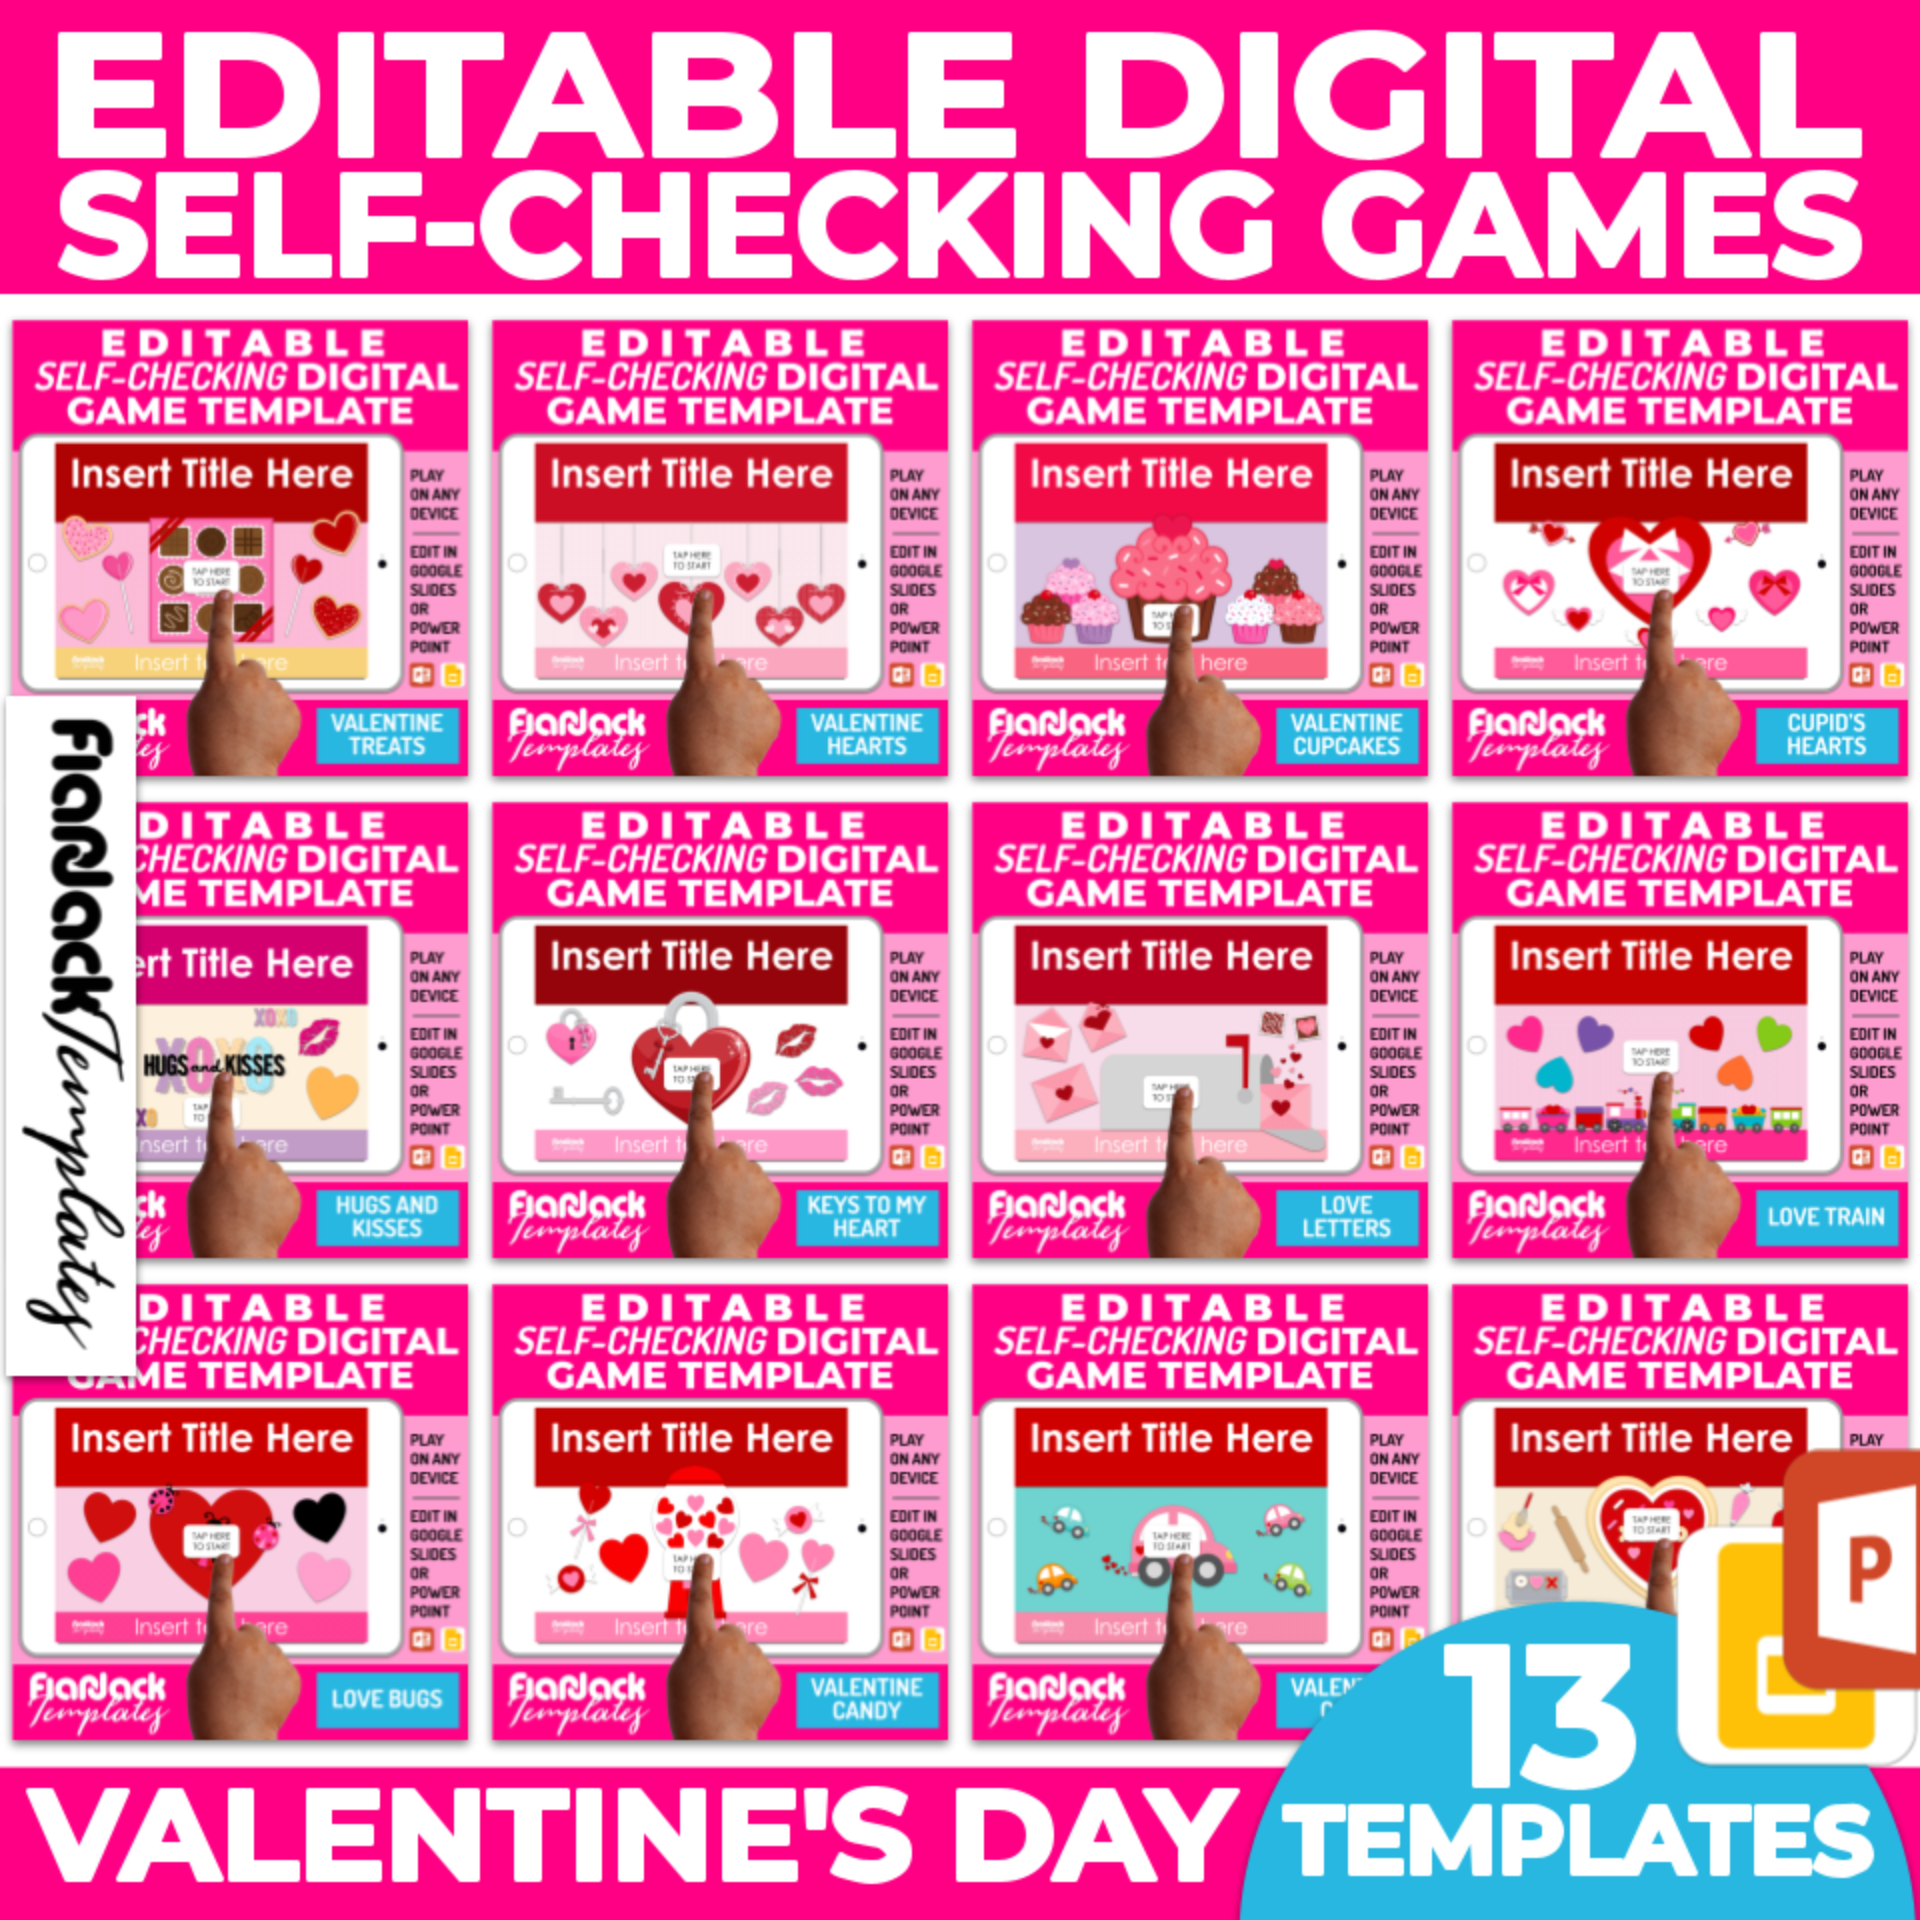 Editable Google Slides PowerPoint Game Templates VALENTINE'S DAY Bundle